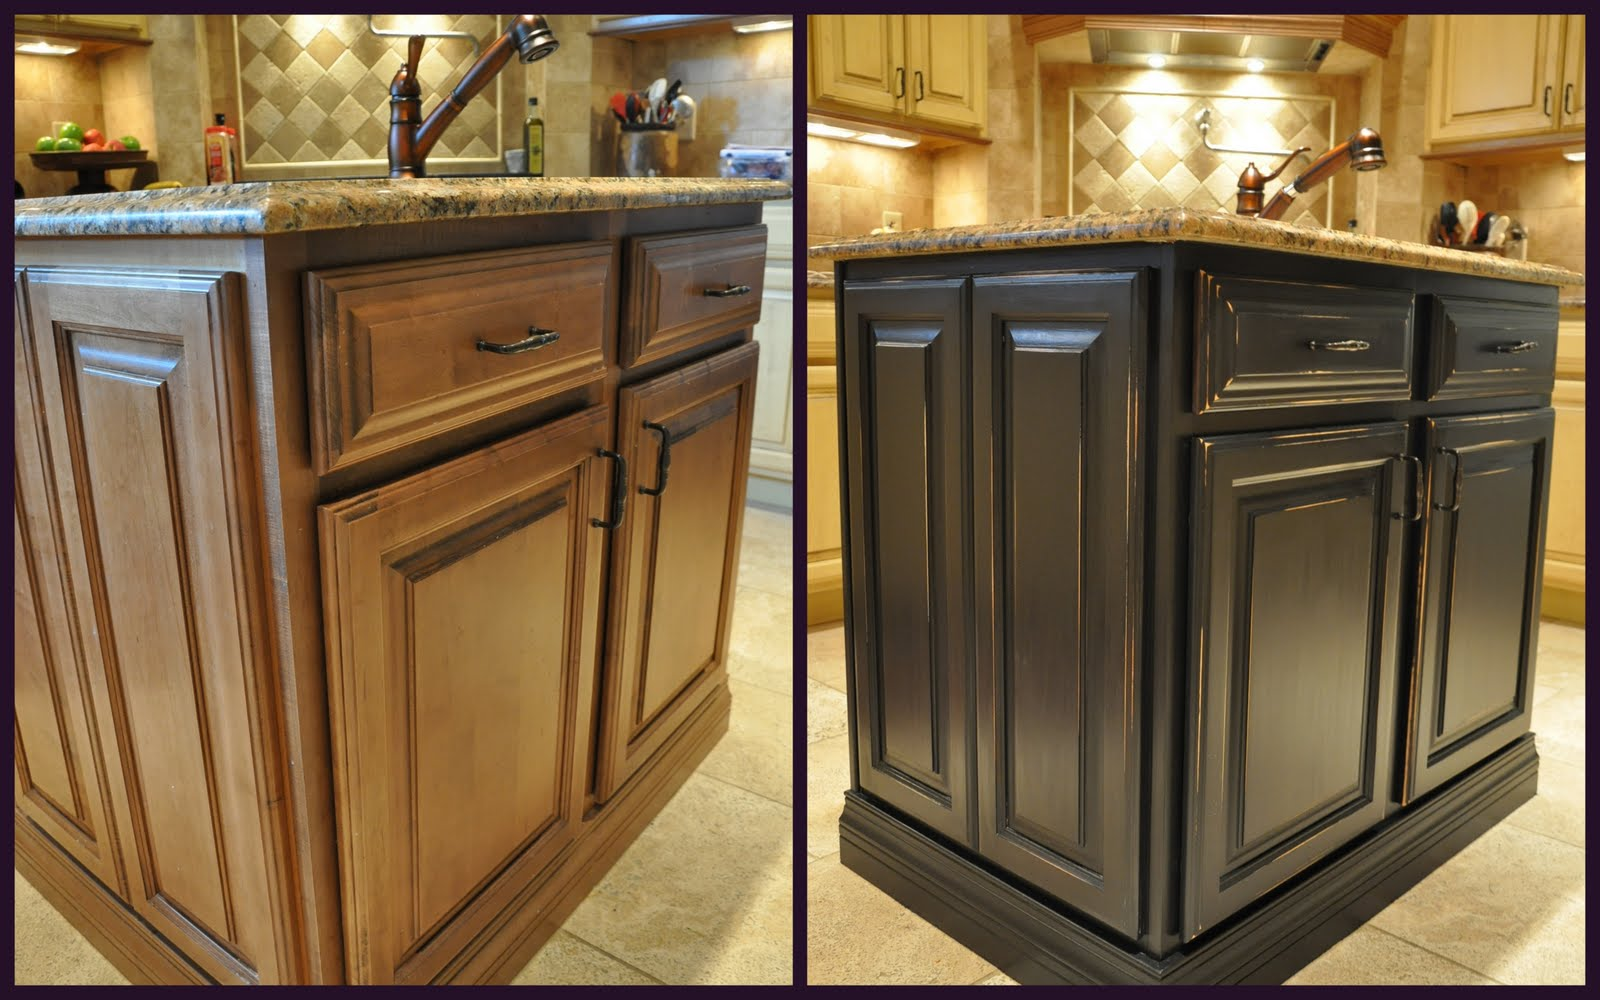 can u paint kitchen cabinets repaint kitchen cabinets How To Paint A Kitchen Island Part 1 Evolution Of Style